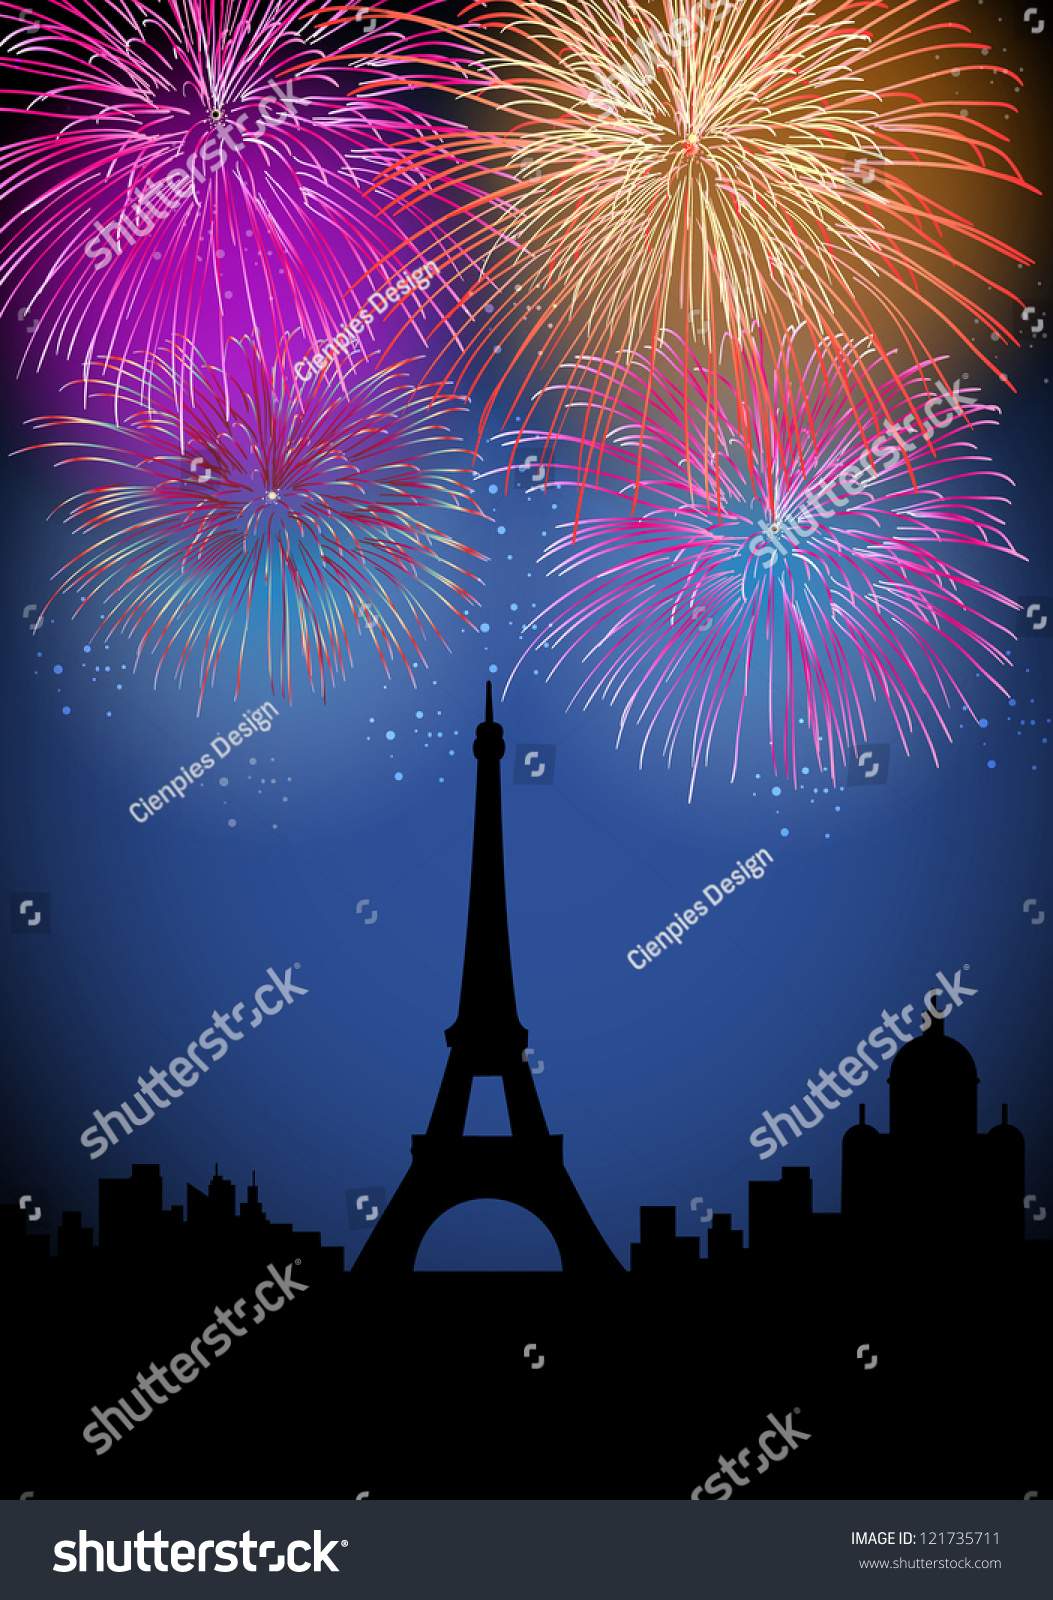 happy new year fireworks paris with eiffel tower silhouette night scene